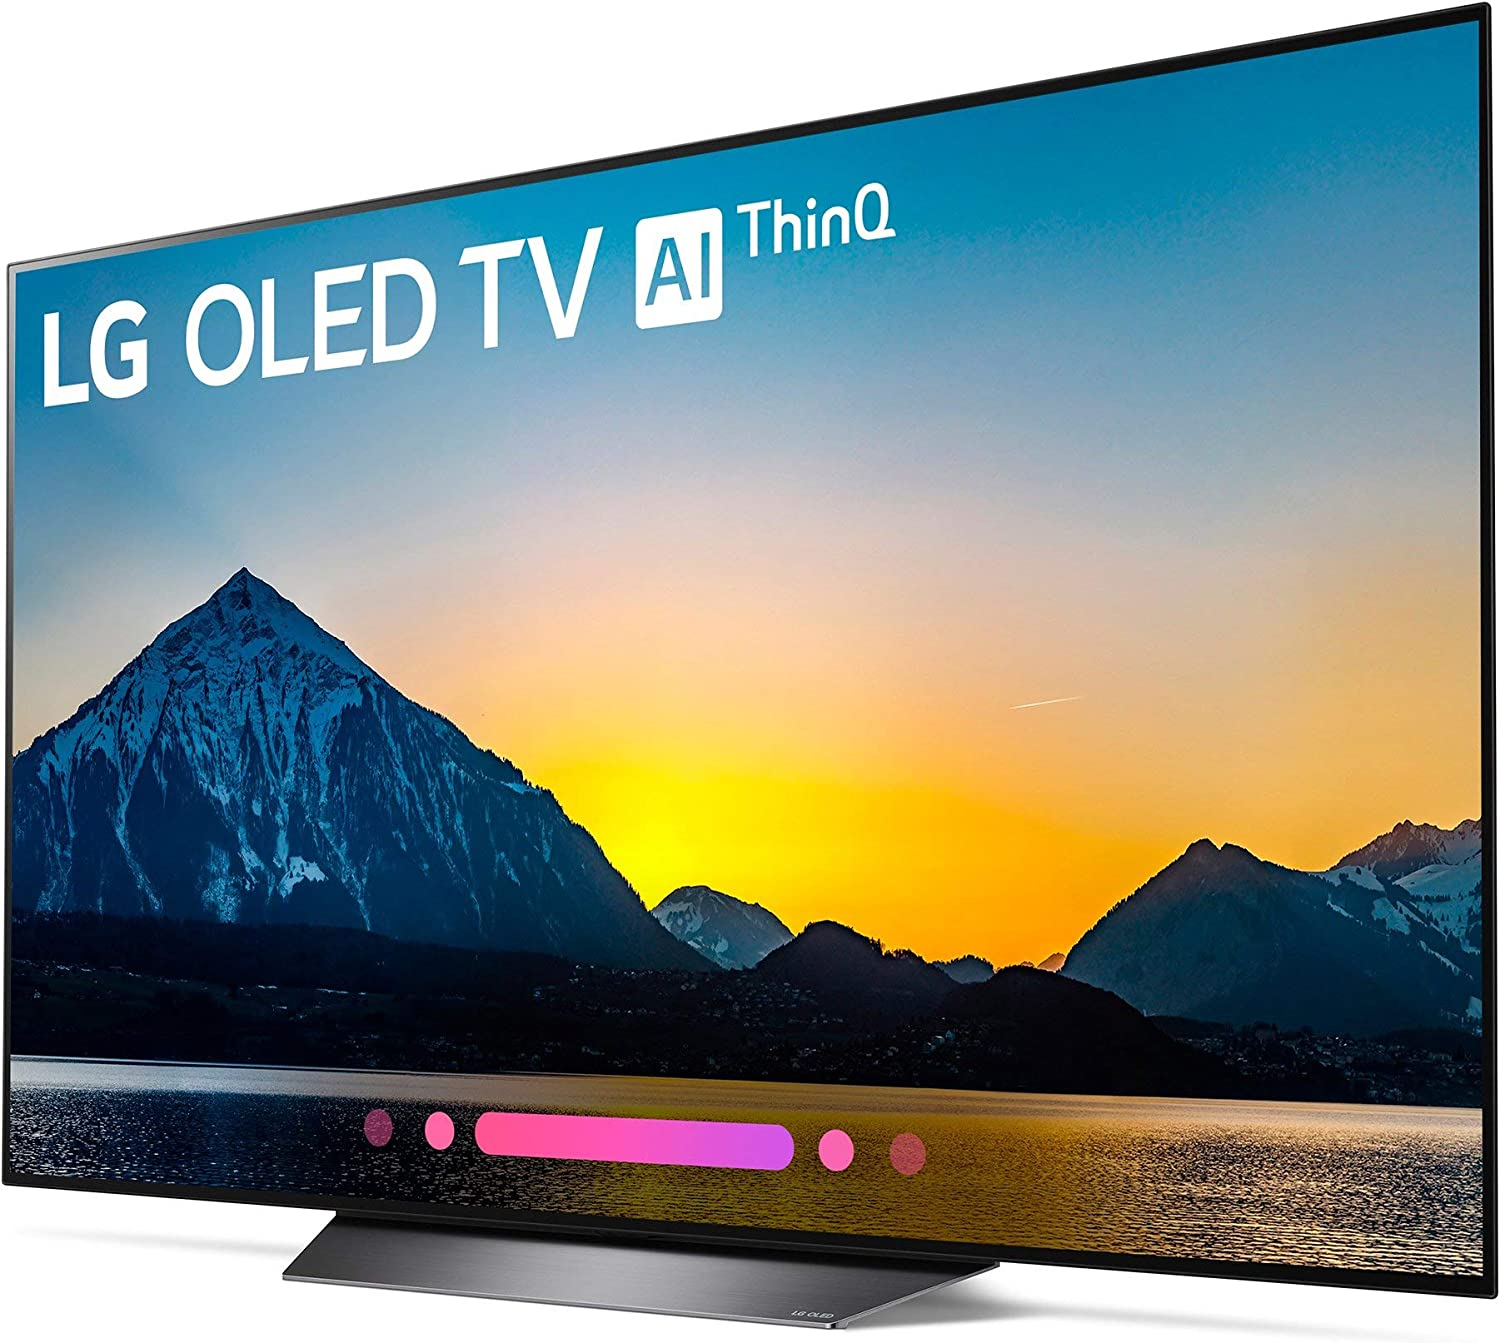 LG OLED65B8PUA 4K Ultra HD Smart OLED TV (Modelo 2018) (Encerado): Amazon.es: Electrónica